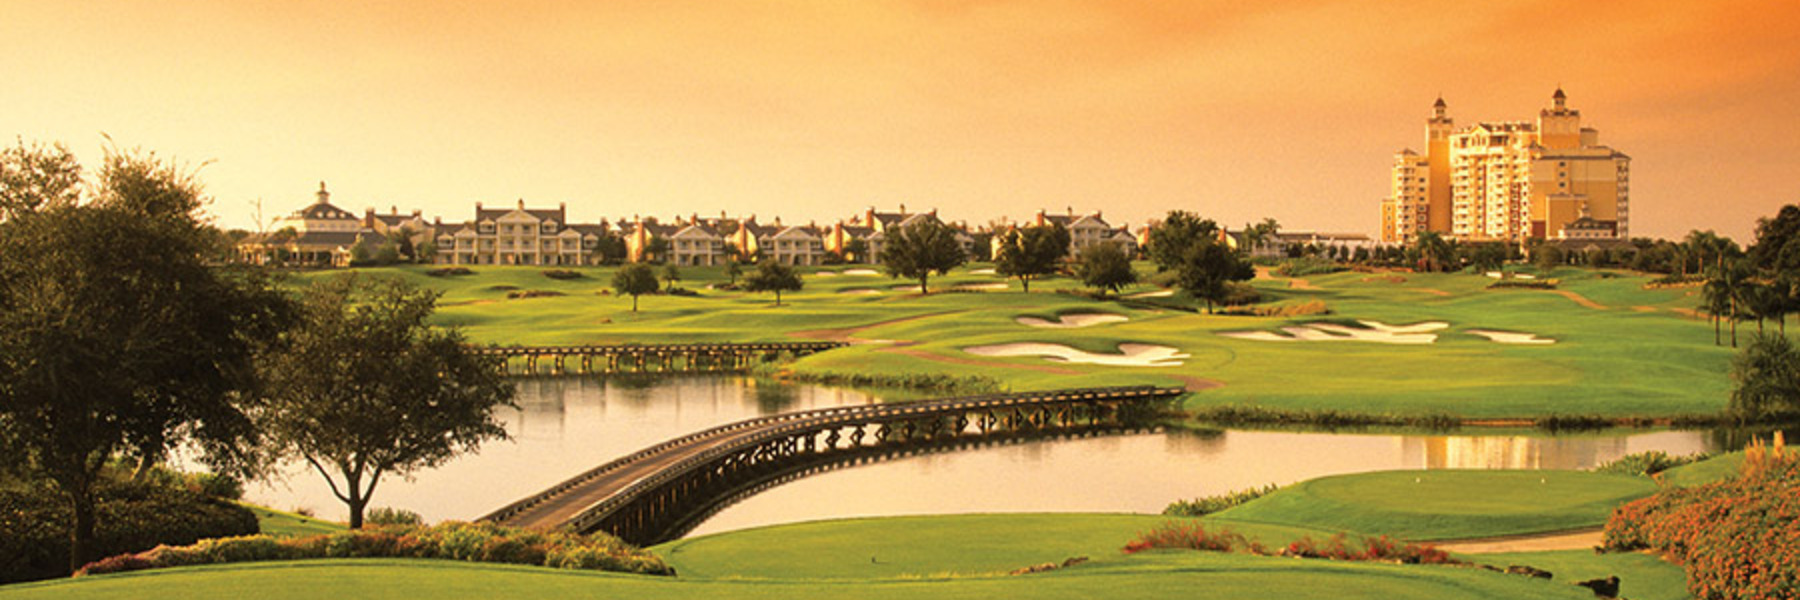 Golf Vacation Package - Reunion Summer Blow-Out Special at $149 per person, per day!